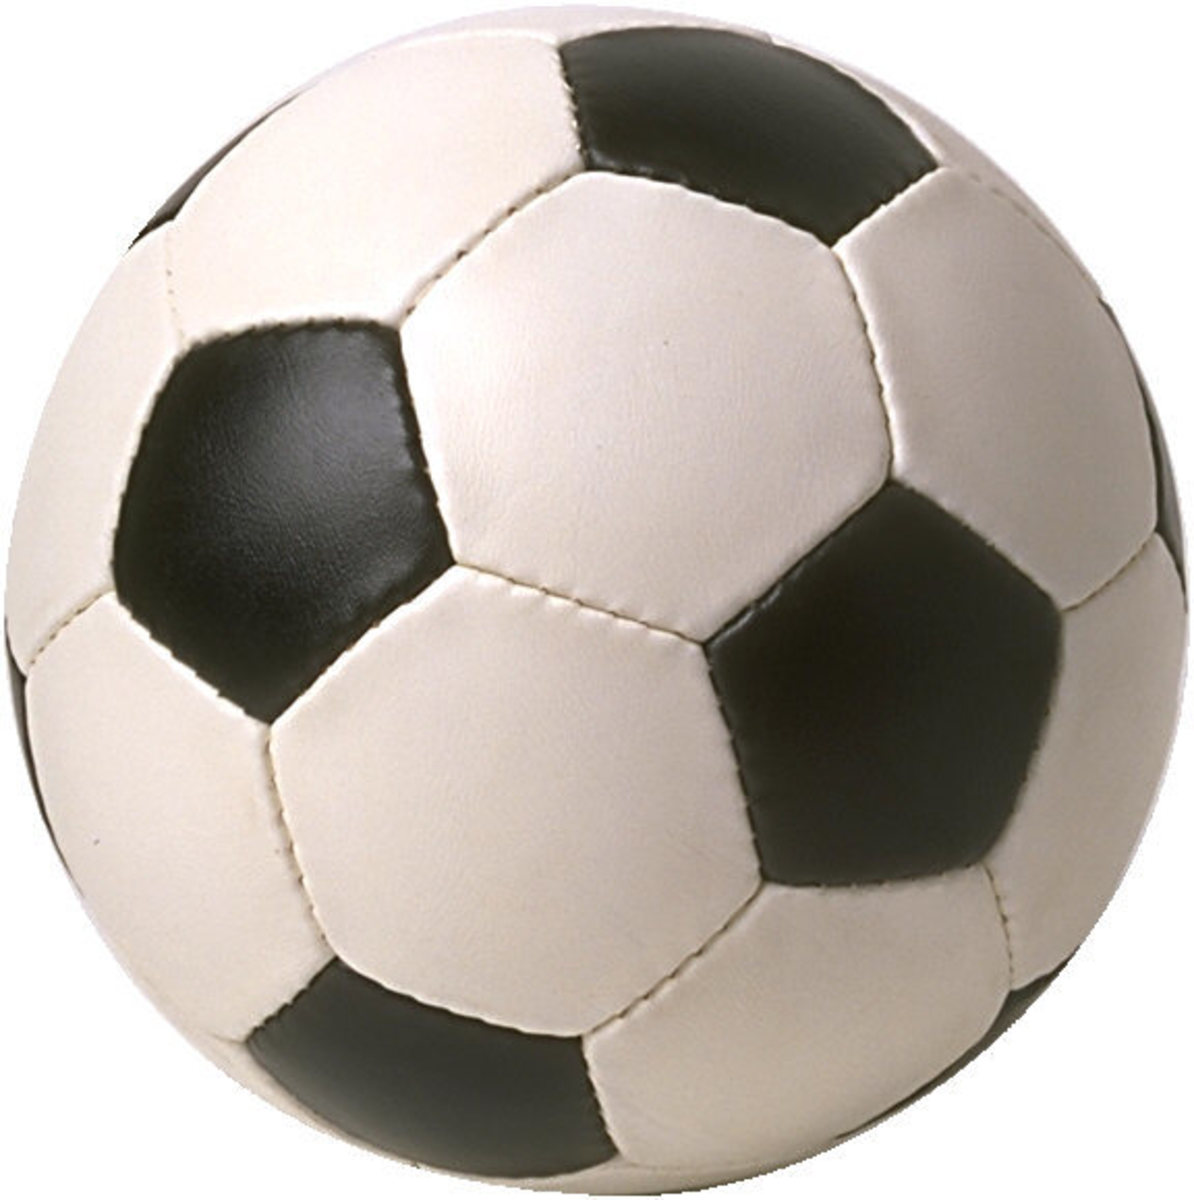 So your kid is good at kicking a ball - don't let it get to your head. Junior did not pick his career as a professional soccer player at age 5.